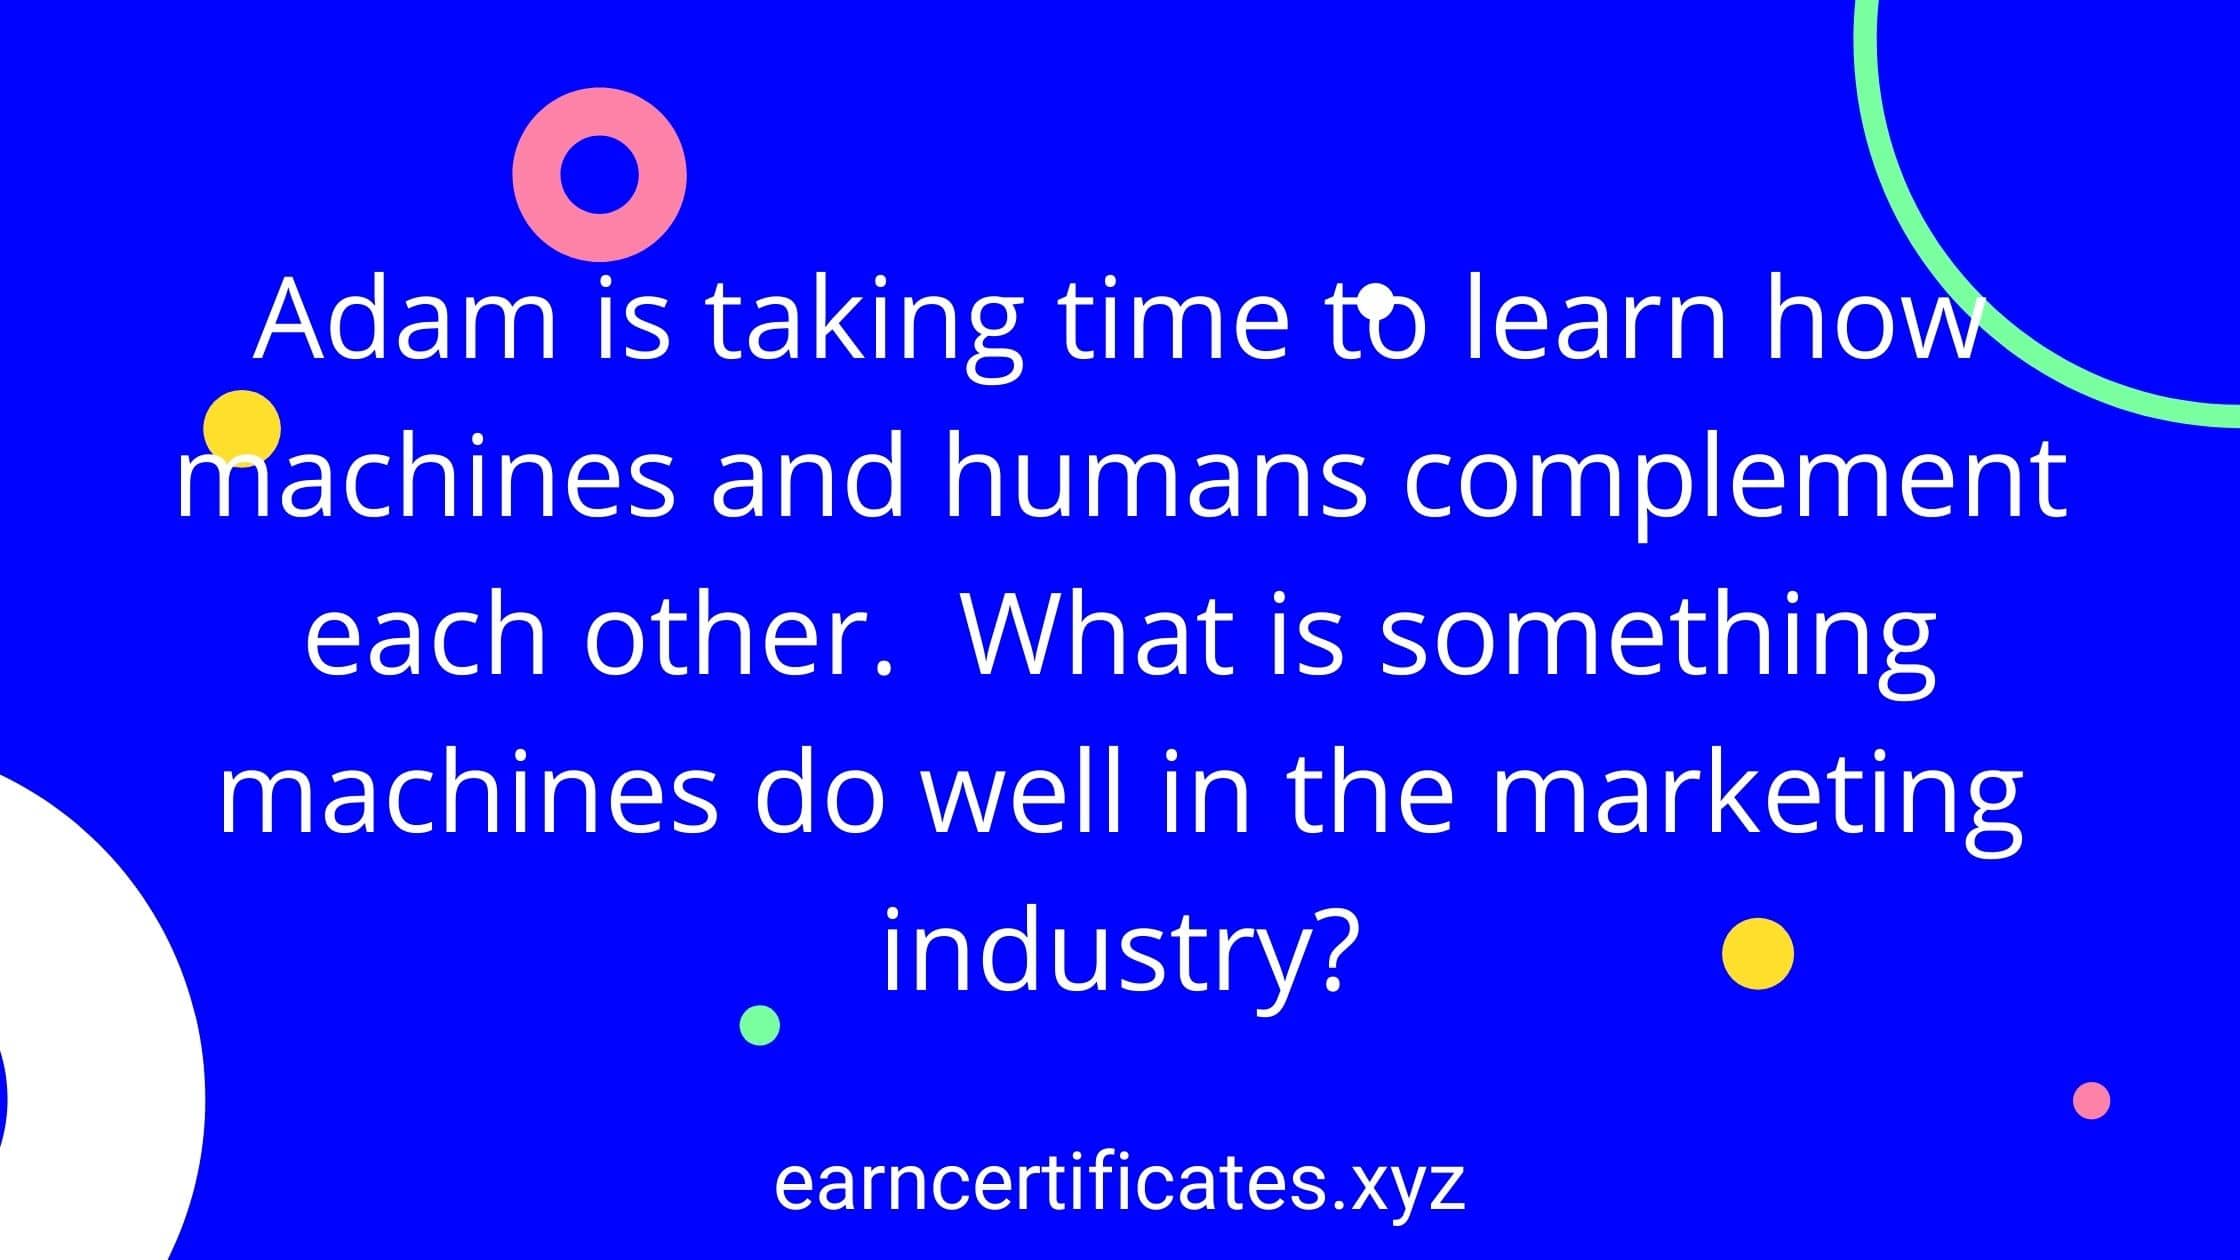 Adam is taking time to learn how machines and humans complement each other. What is something machines do well in the marketing industry?